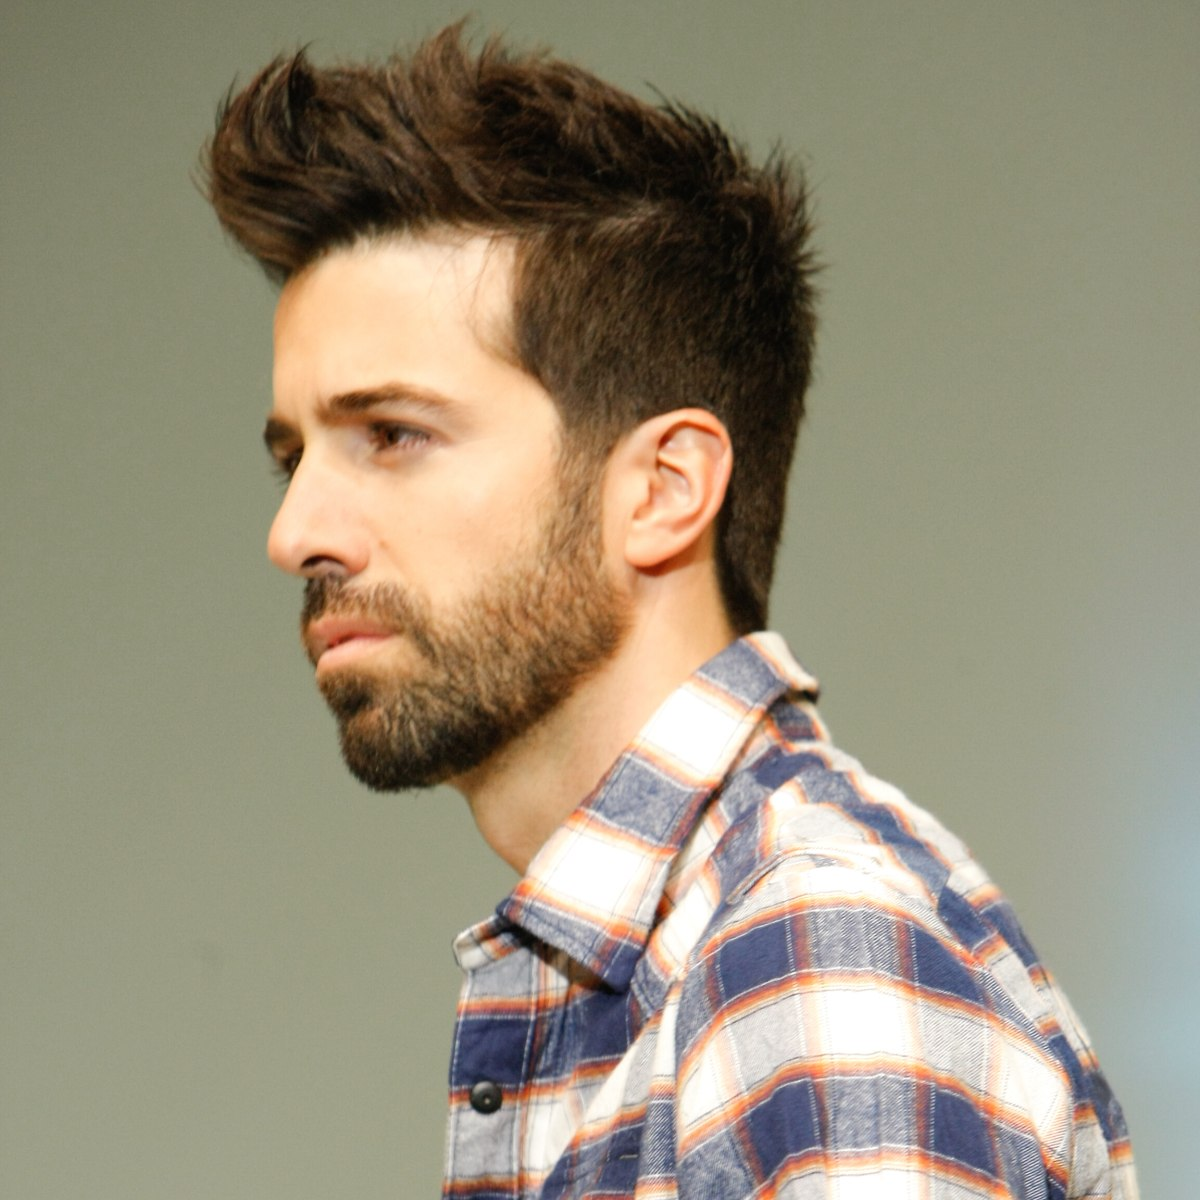 Tremendous Young Casual And Low Maintenance Male Haircut Hairstyles For Men Maxibearus